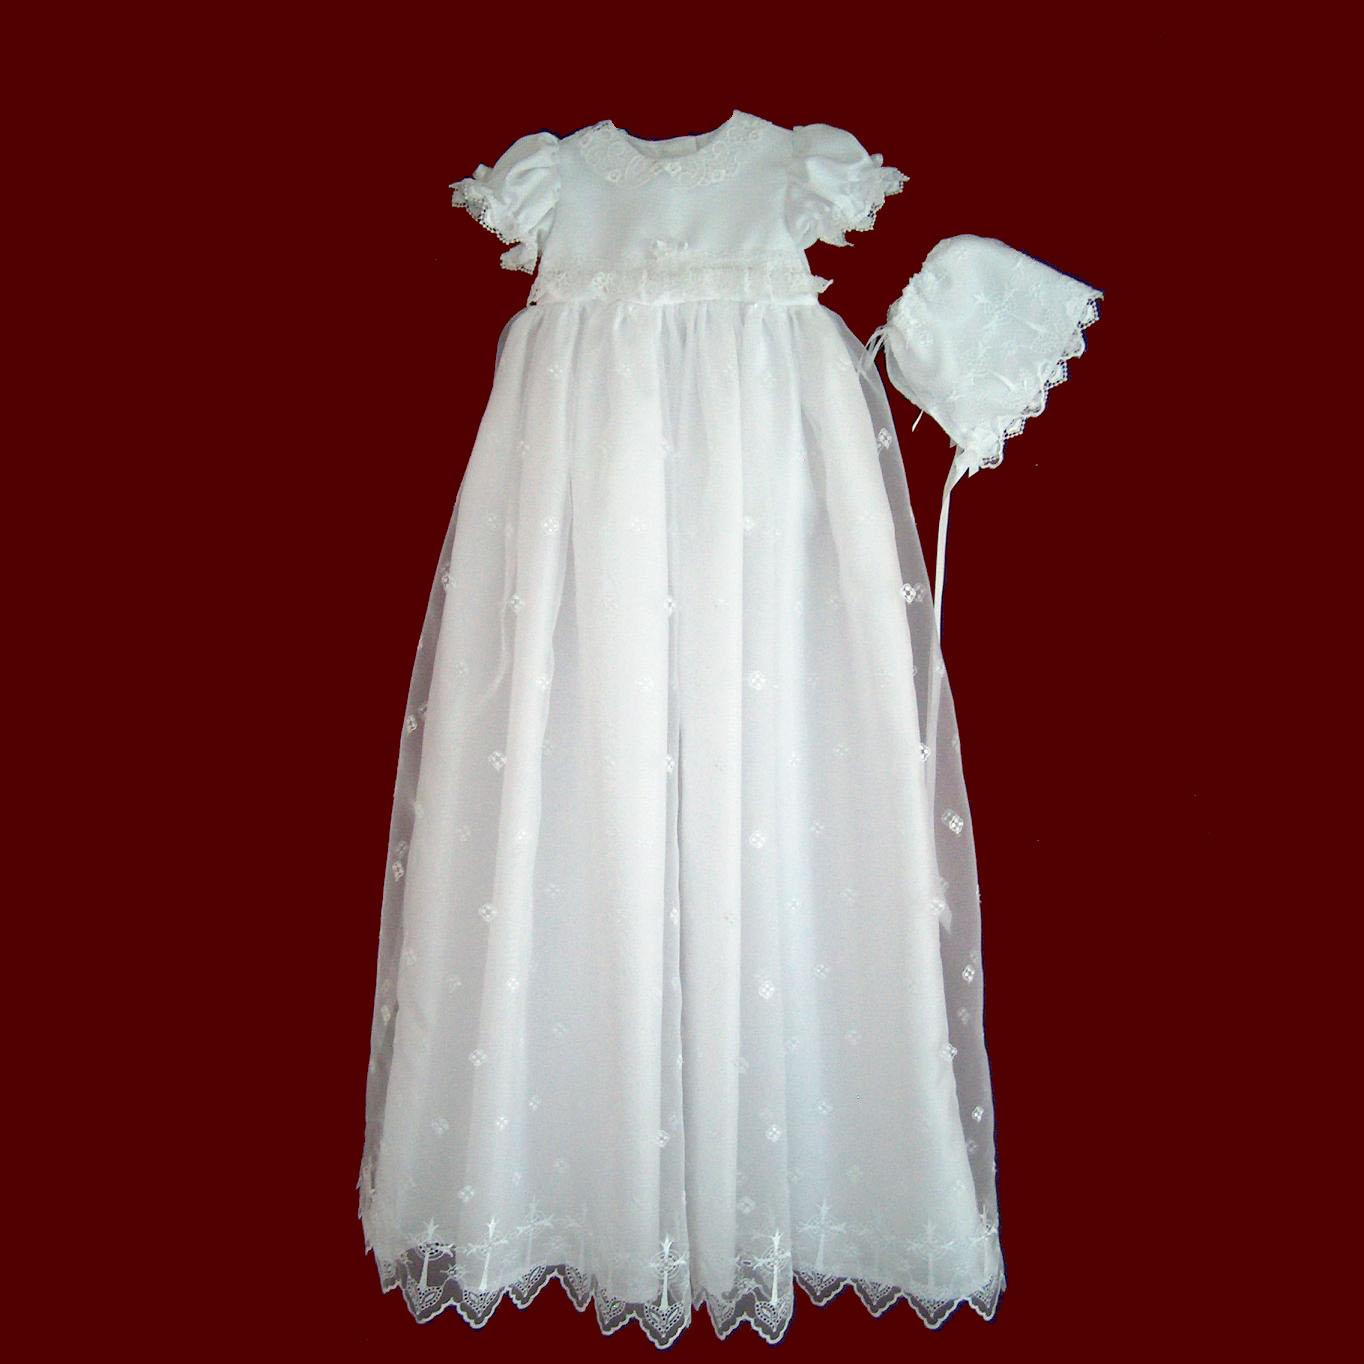 Christening Gowns From Wedding Dresses: Girls Cross Embroidered Organza Detachable Christening